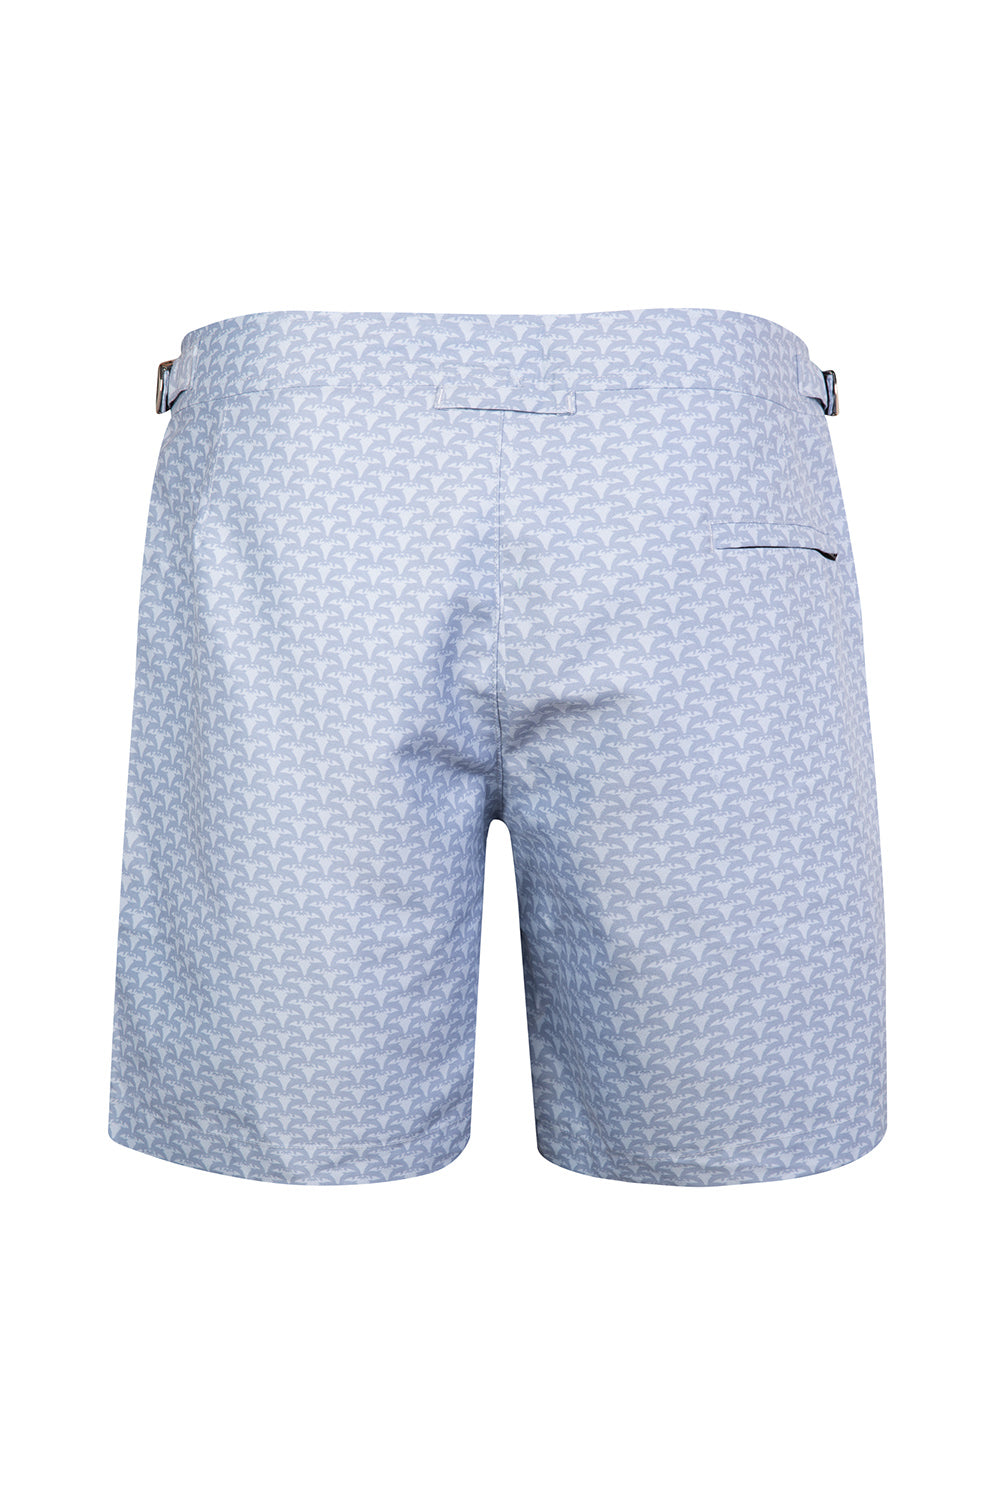 The Grey Dolphin Tailored Swim Short